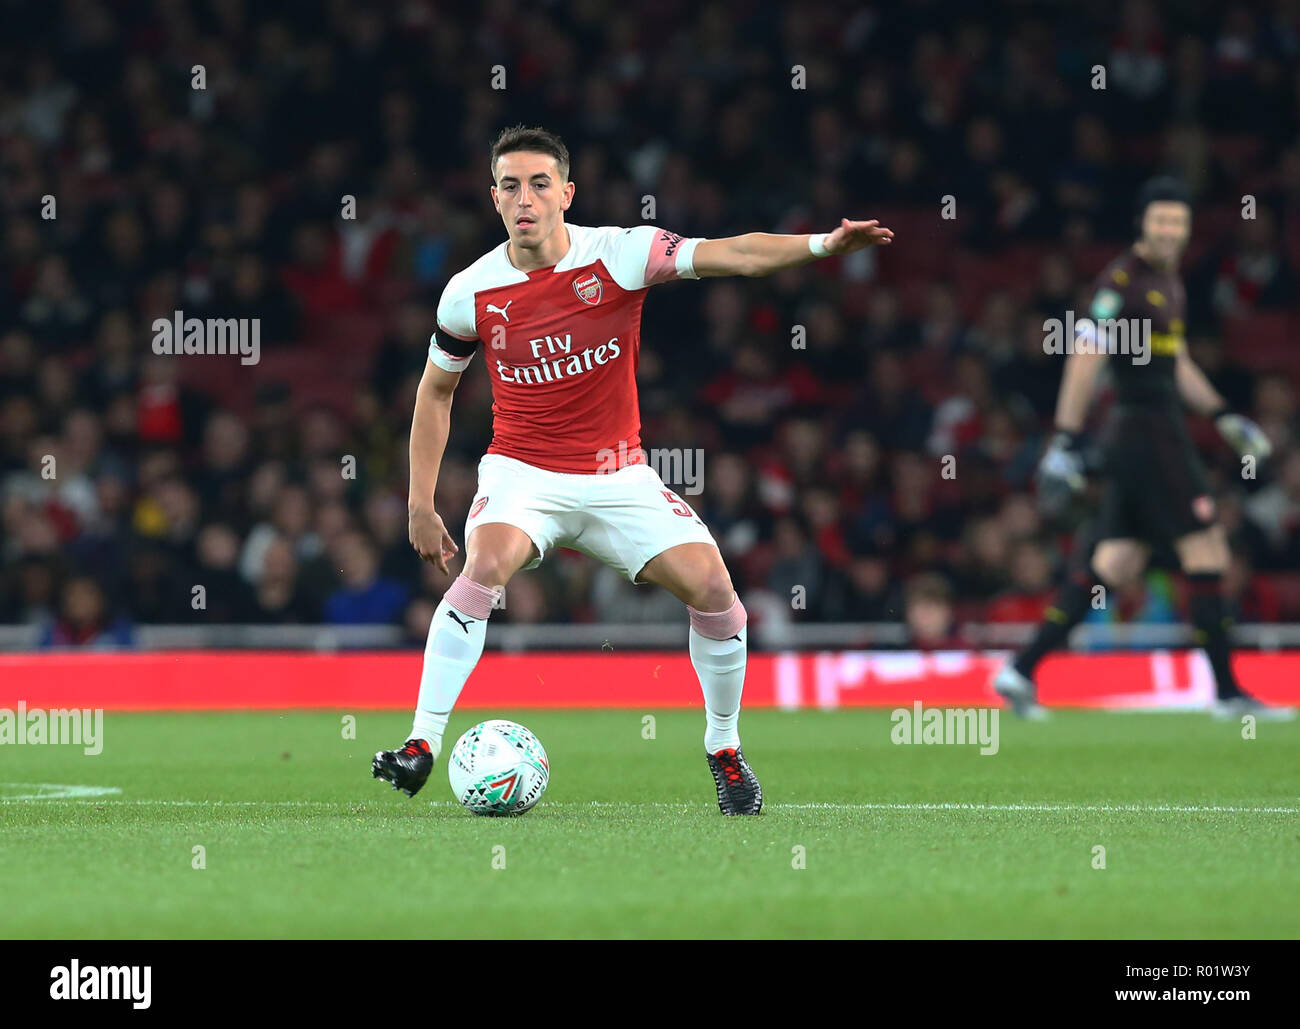 London, UK, 31 October, 2018 Julio Pleguezuelo of Arsenal making his debut during EFL Cup Fourth Round  between Arsenal and Blackpool at Emirates stadium , London, England on 31 Oct 2018.  Credit Action Foto Sport Credit: Action Foto Sport/Alamy Live News - Stock Image